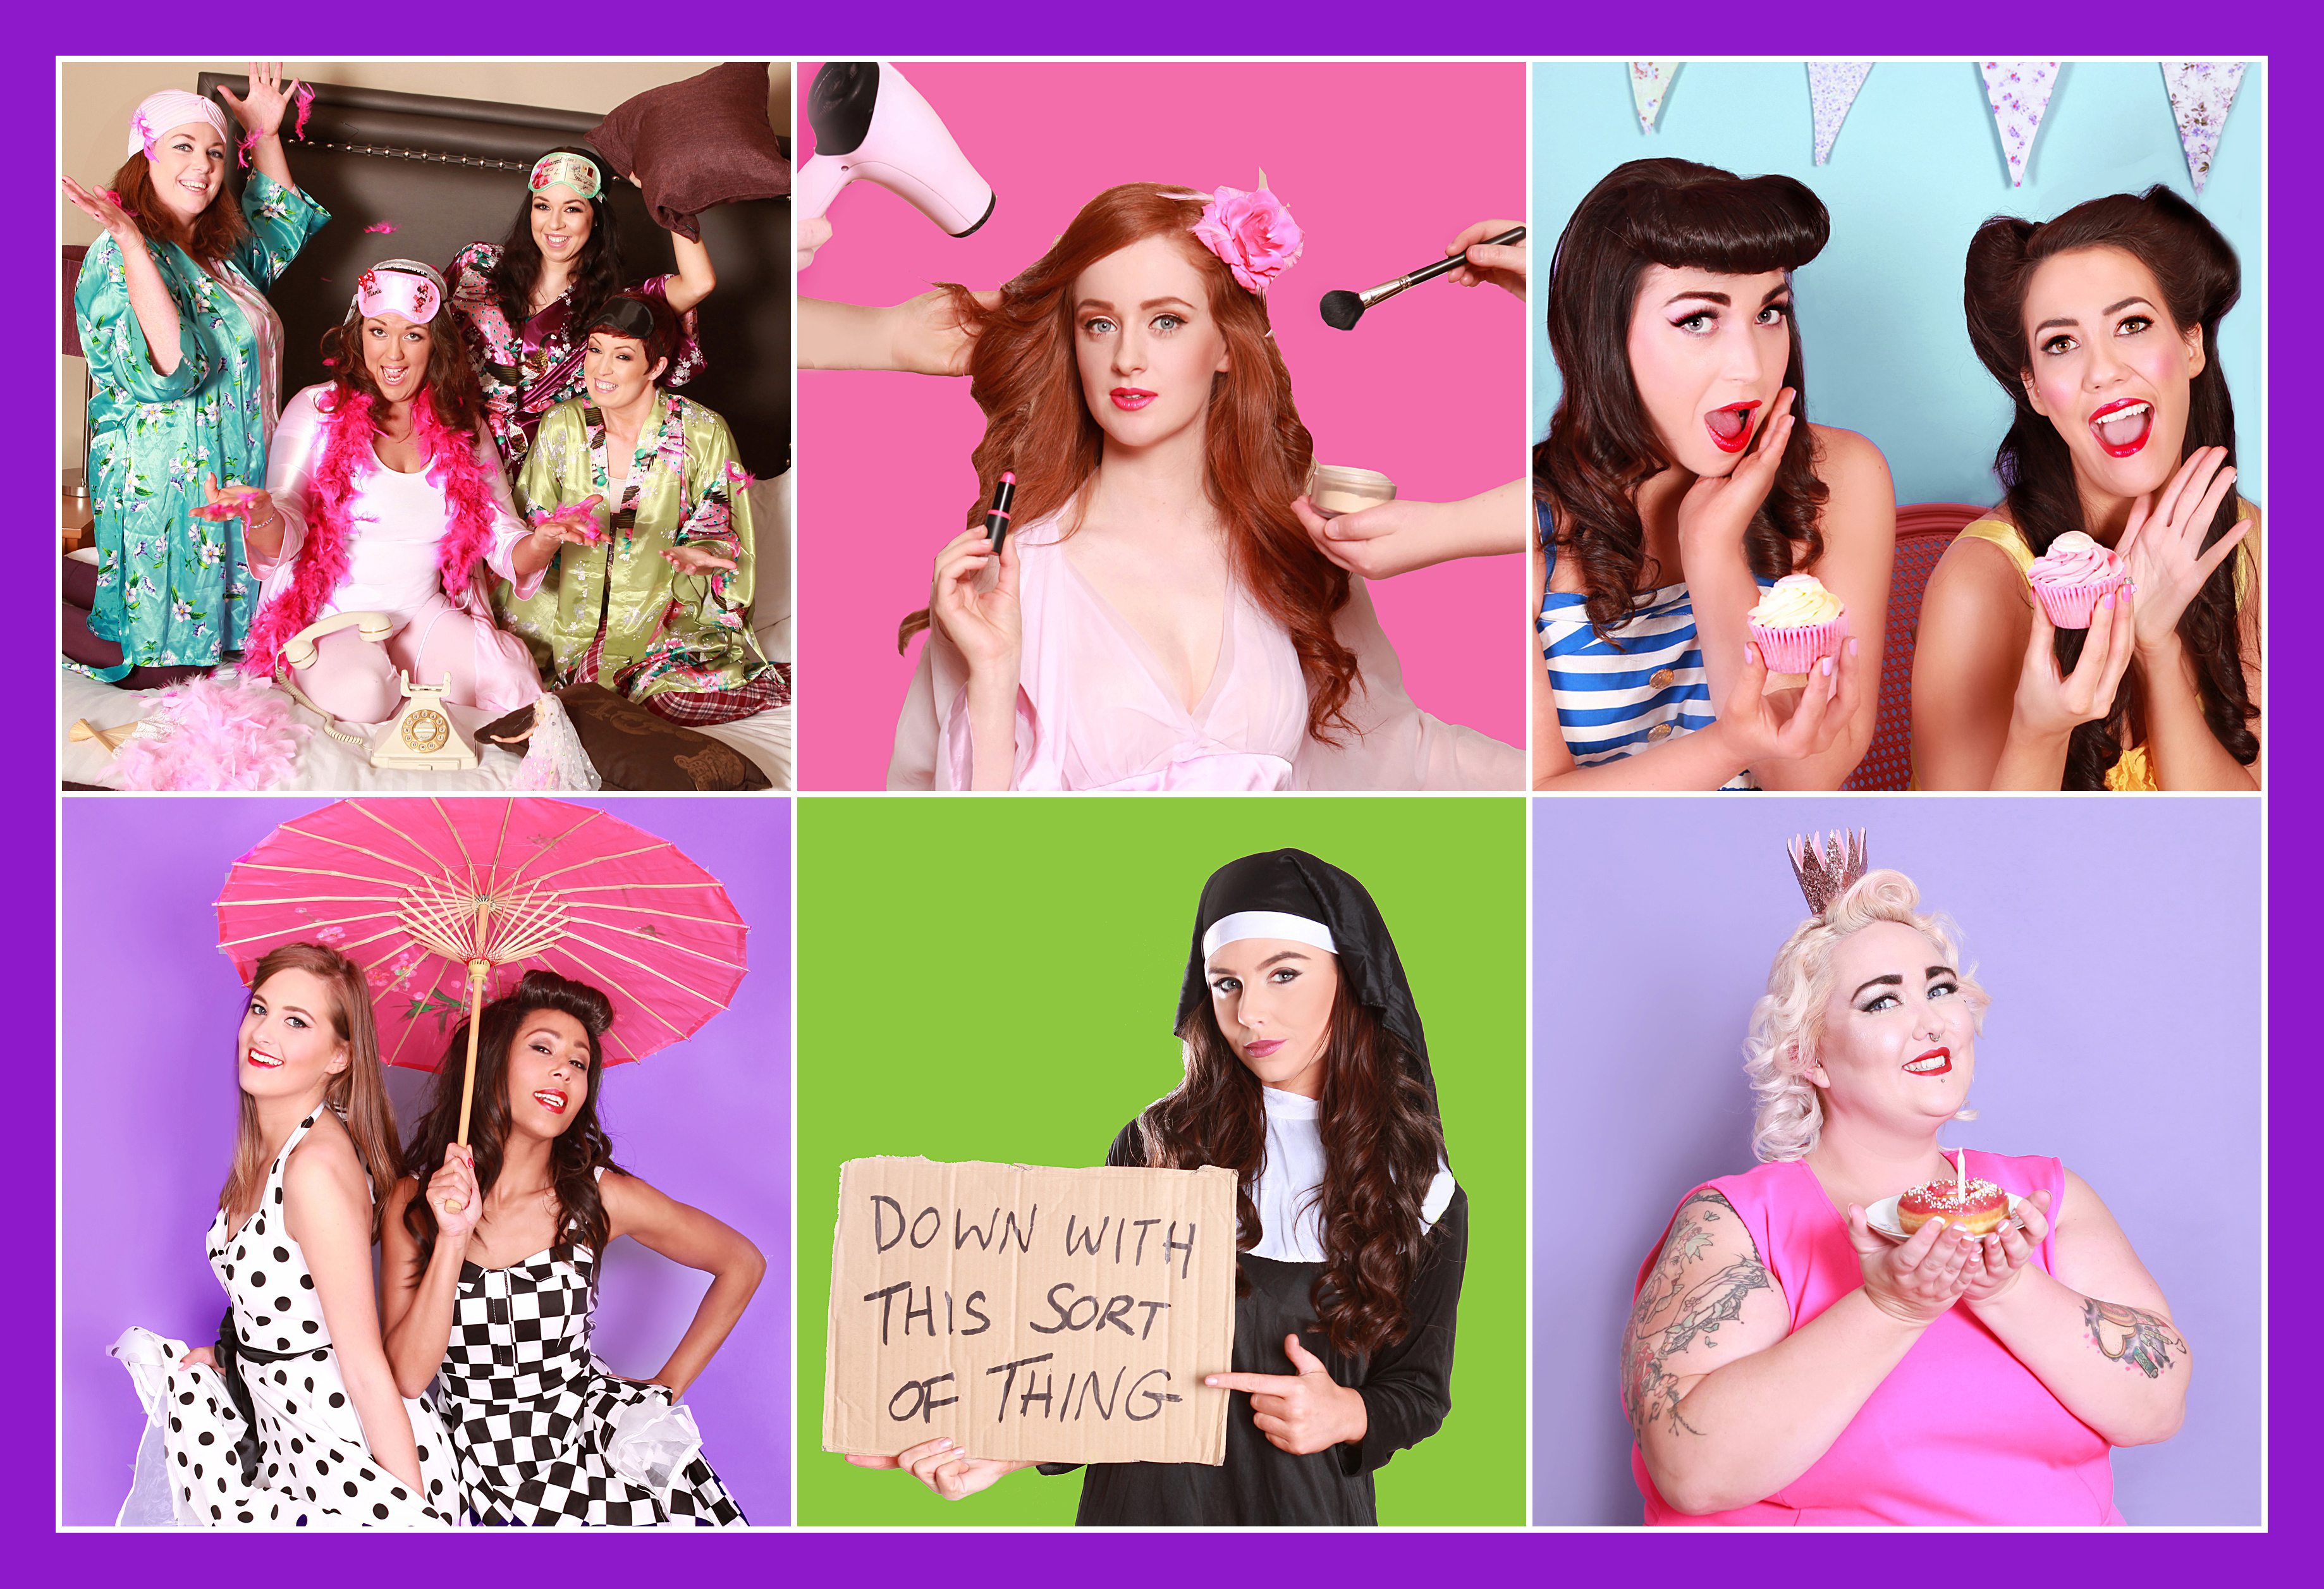 slumber hen party galway hen party with boudoir girls hen party ideas henparty activities galway , cool henparty ideas